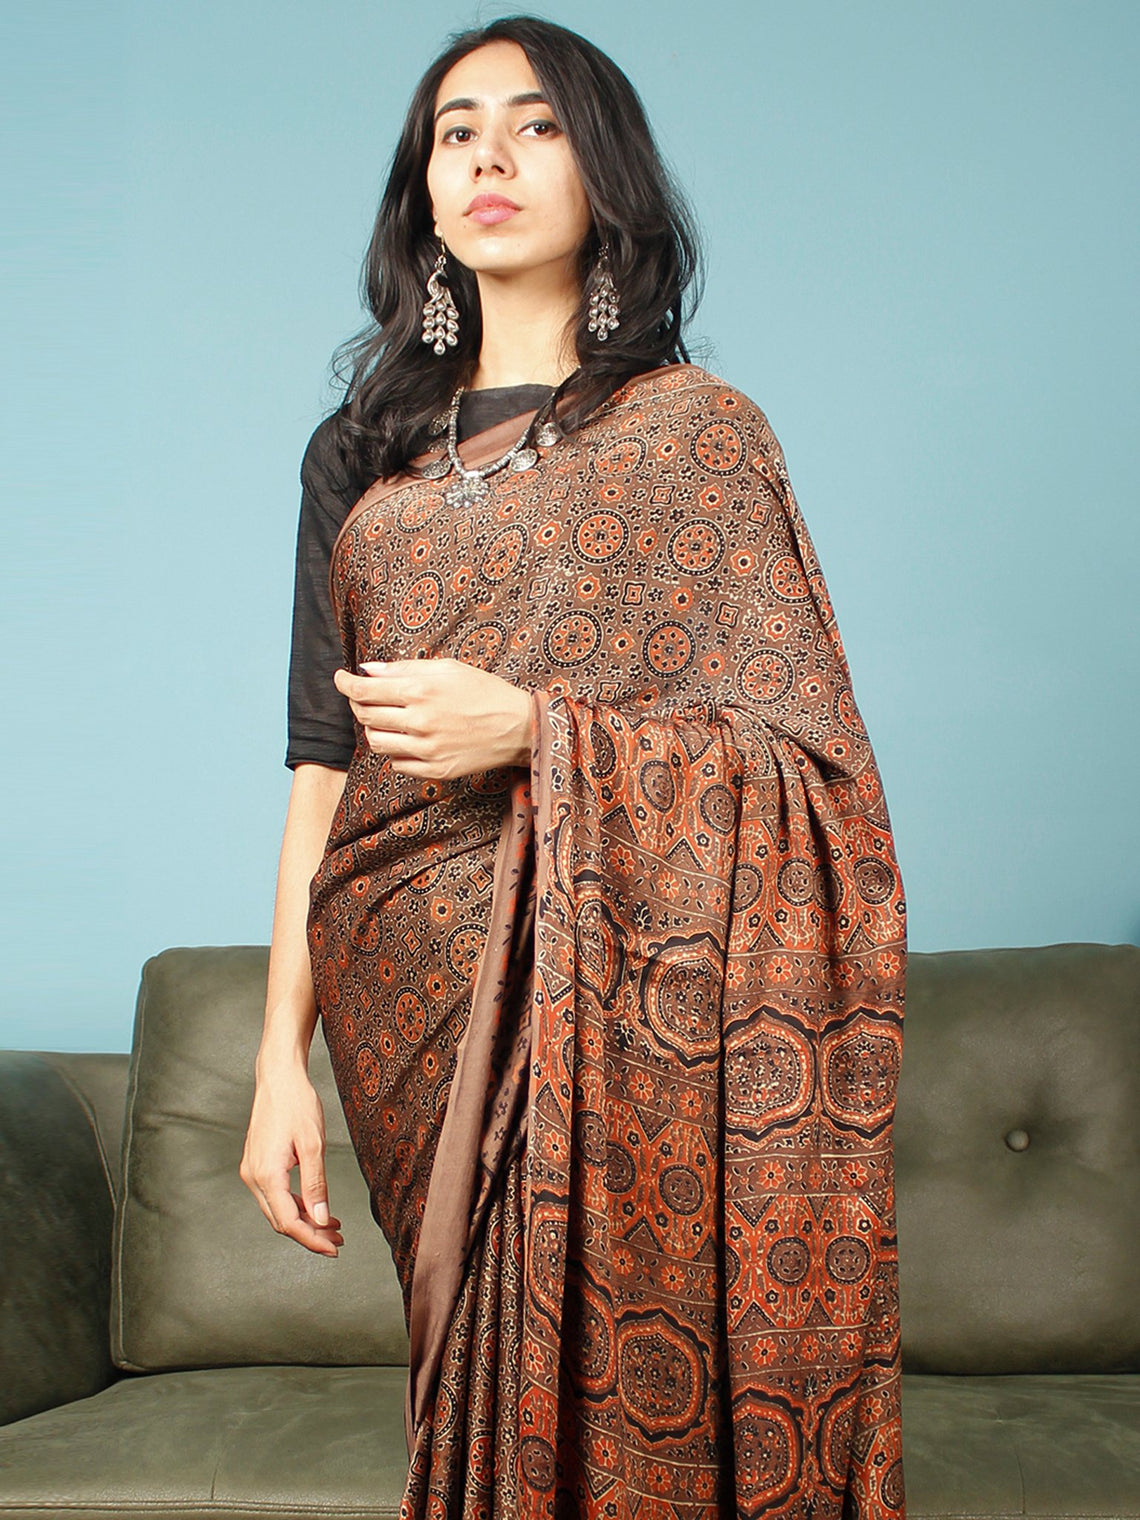 Brown Rust Black Ajrakh Hand Block Printed Modal Silk Saree in Natural Colors - S031703363